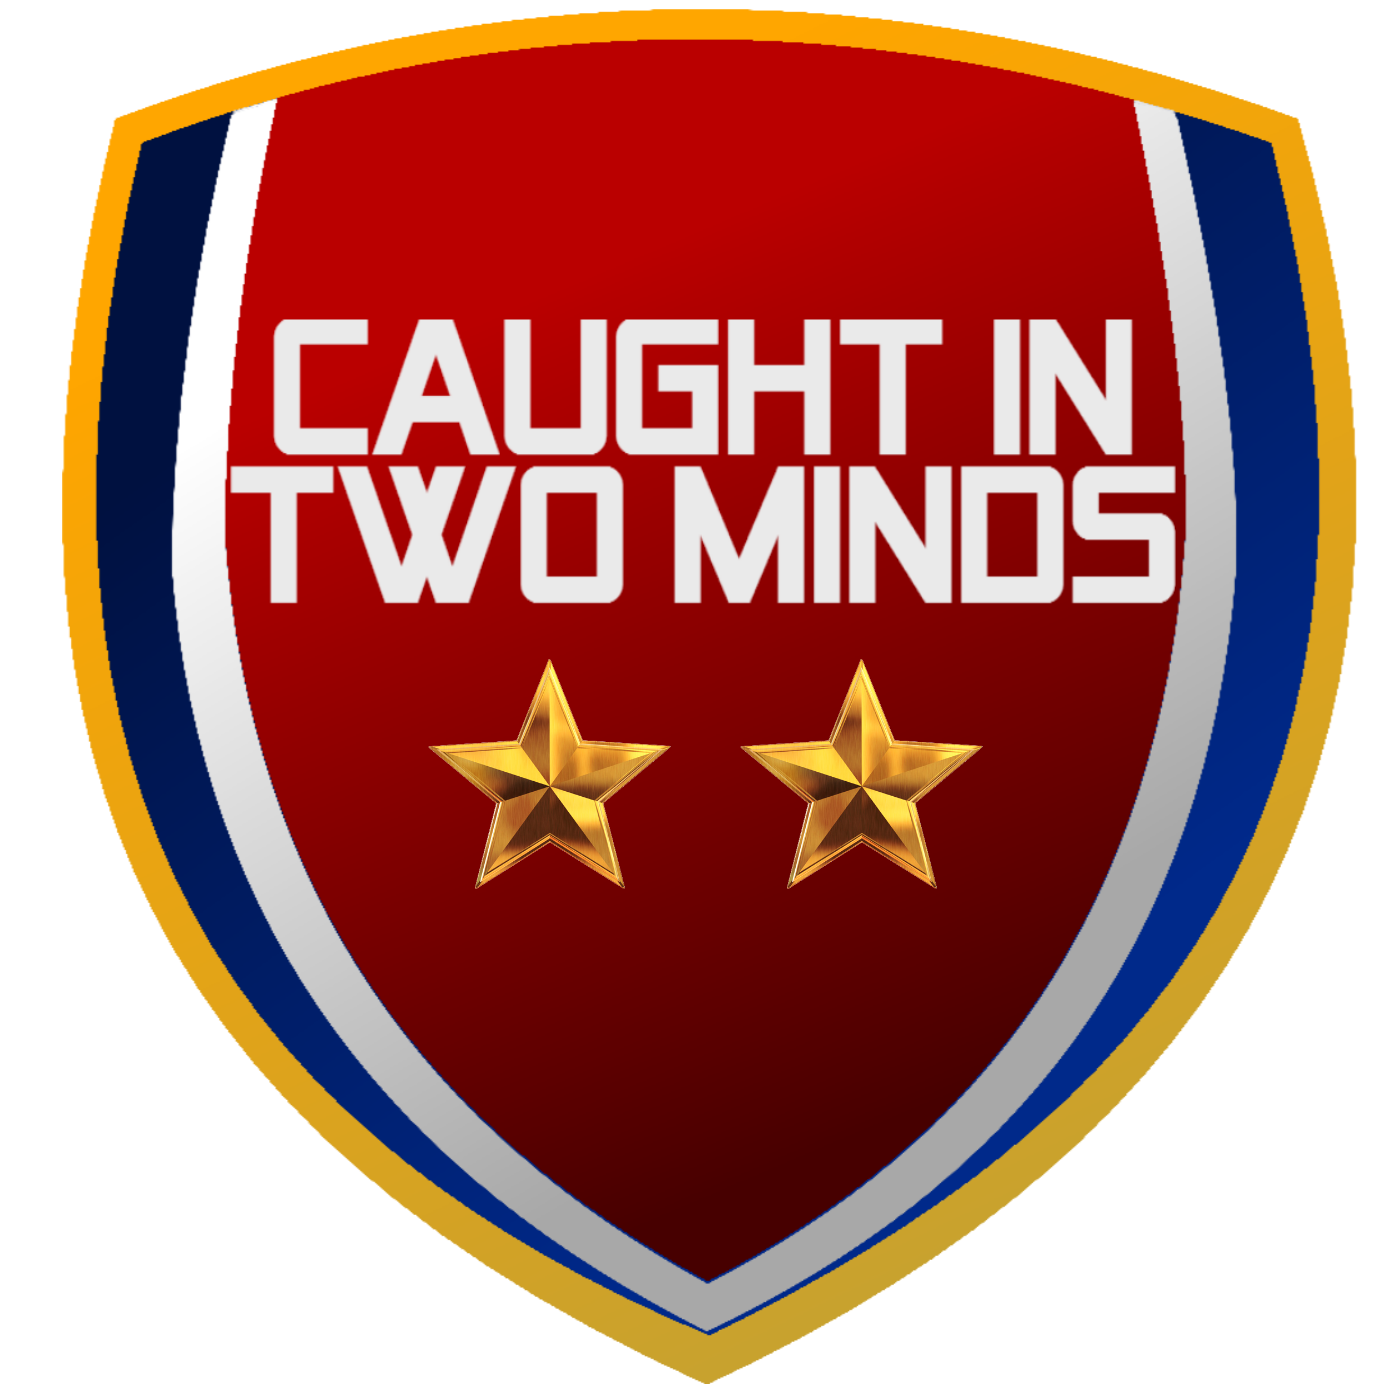 20 - Caught In Two Minds